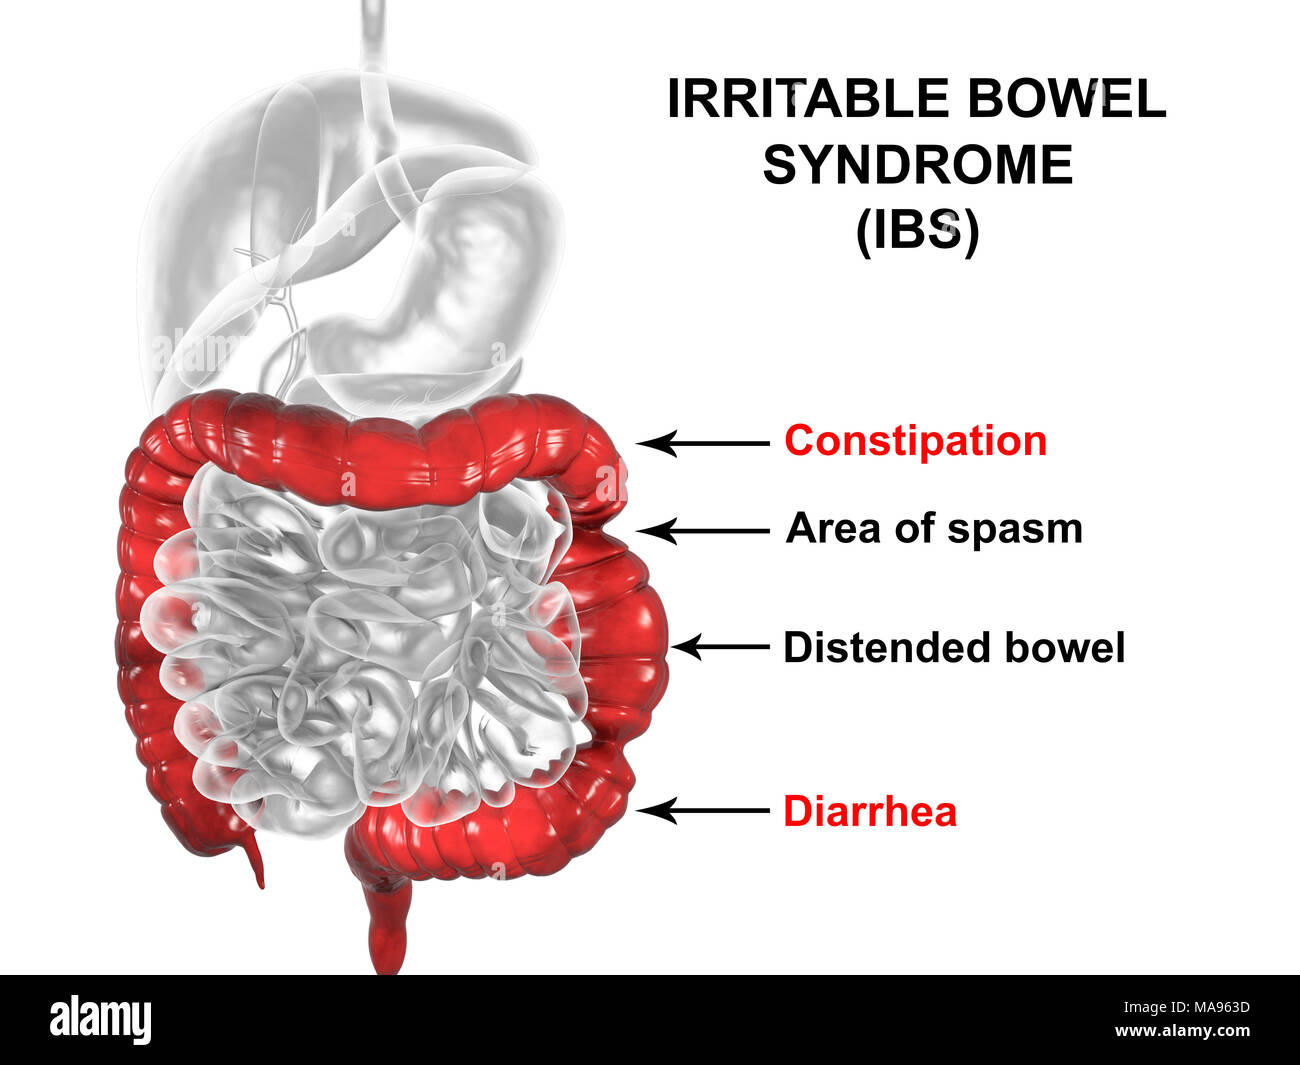 pictures Irritable Bowel Syndrome: Symptoms, Causes and How to Get Rid of it